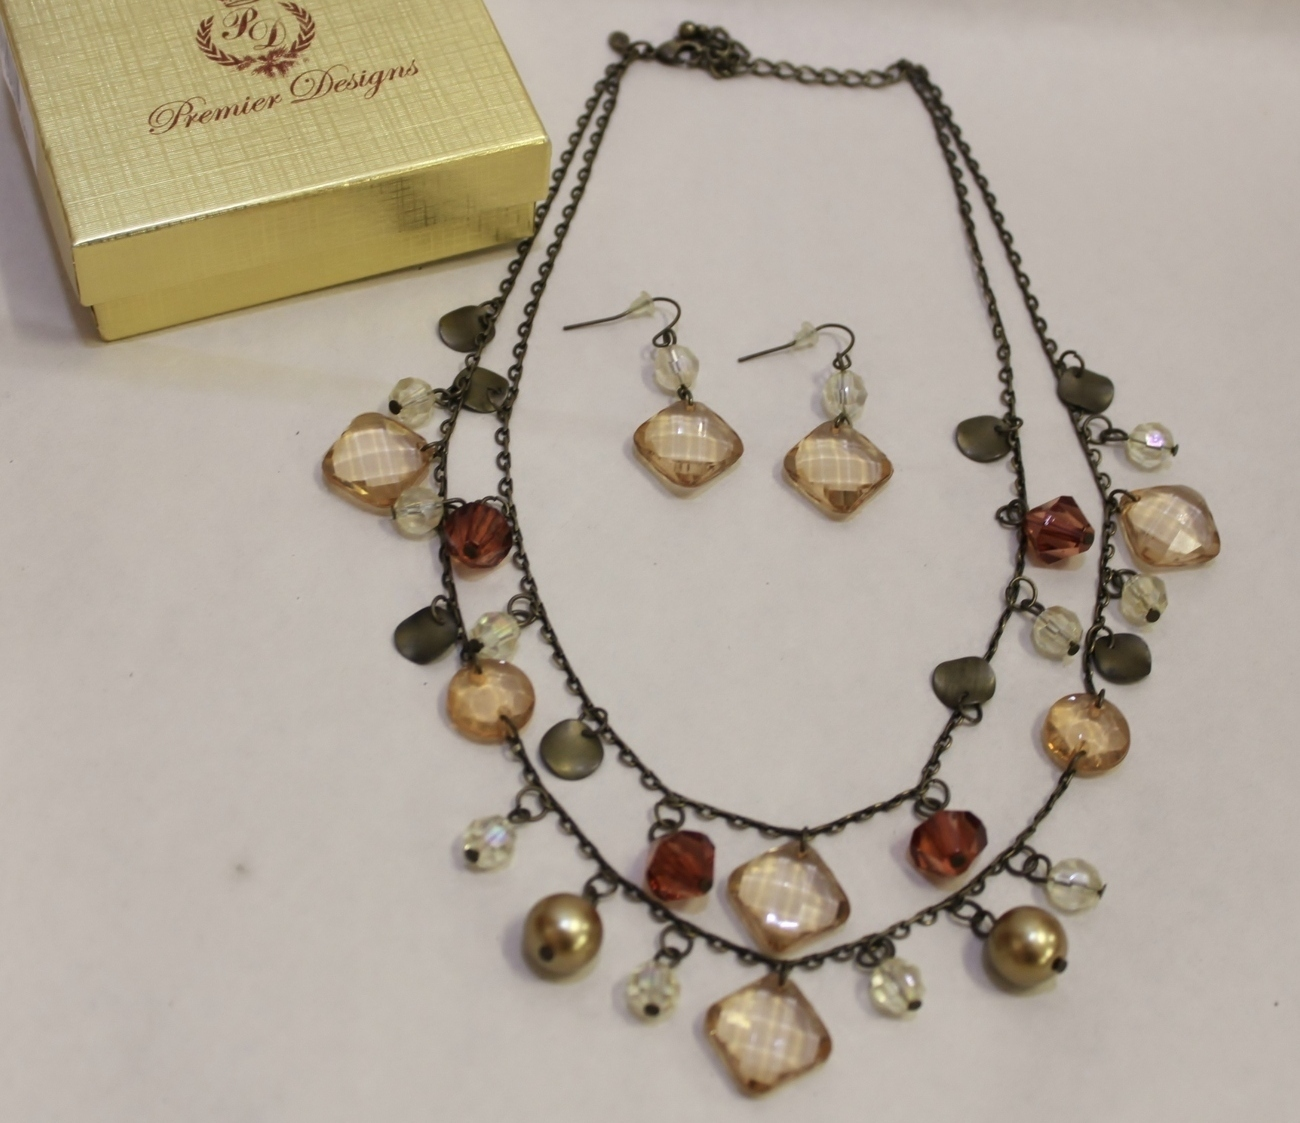 Premier Designs Tuscany Earth Two Layer Necklace Earrings